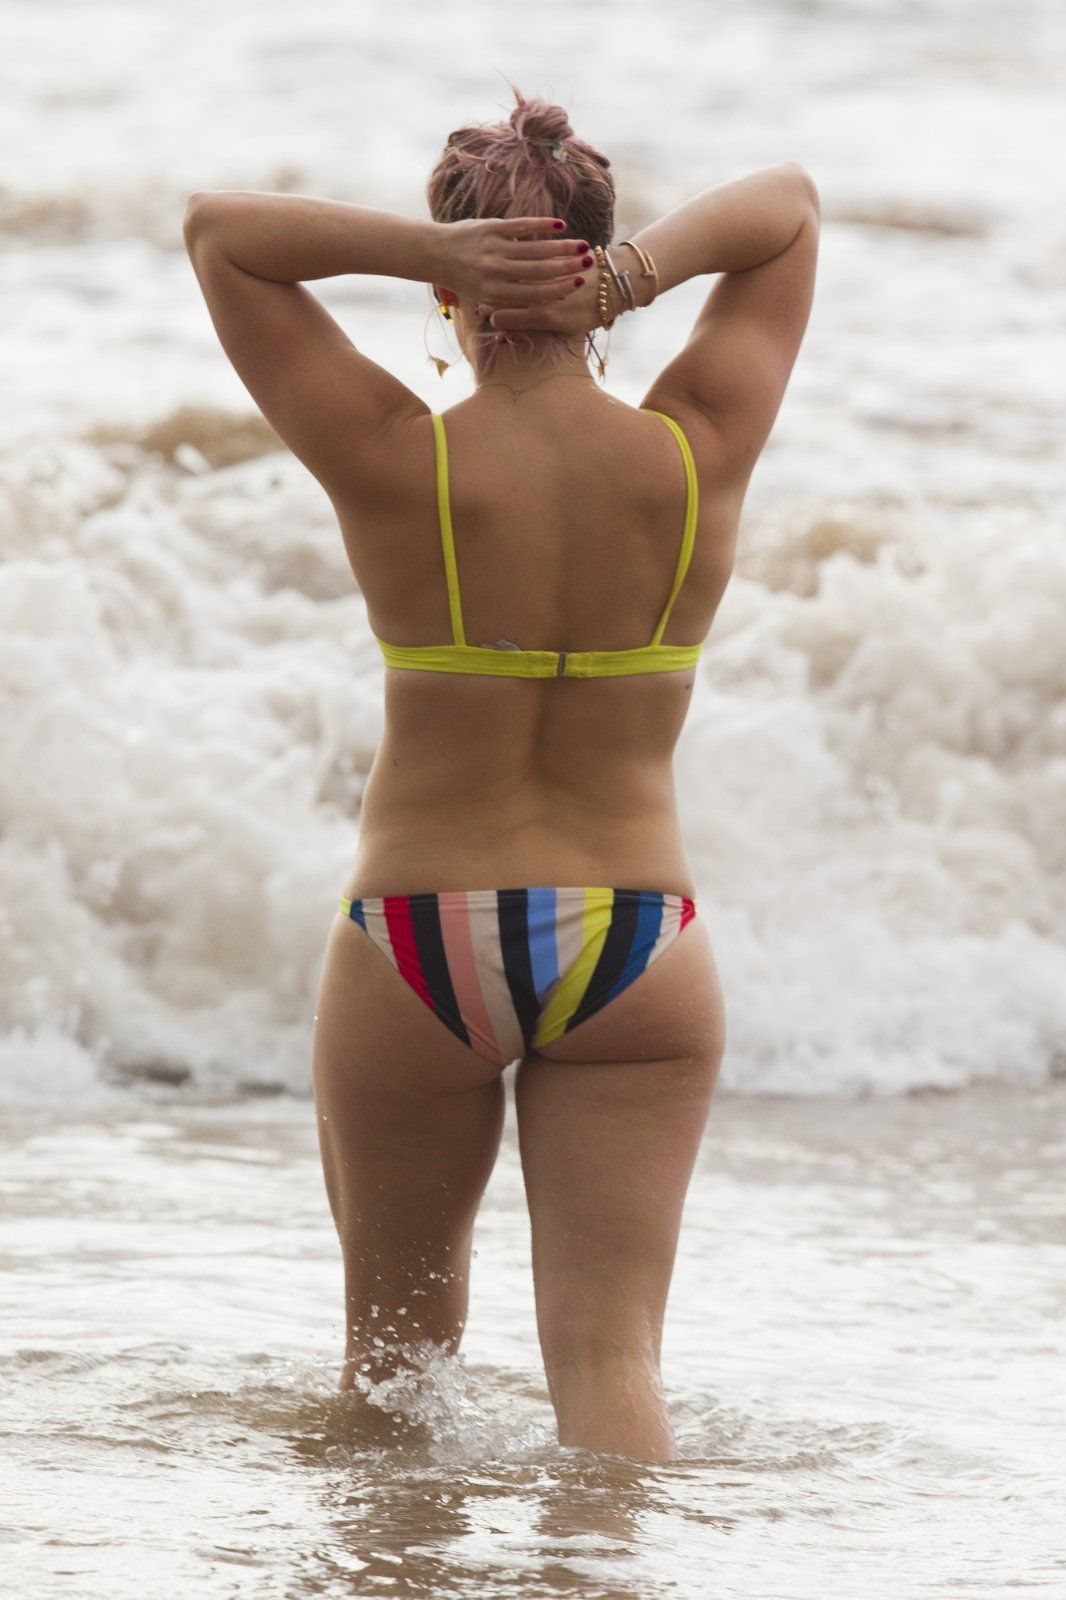 Hilary duff ass in swimsuit in hawaii nudes (71 images)